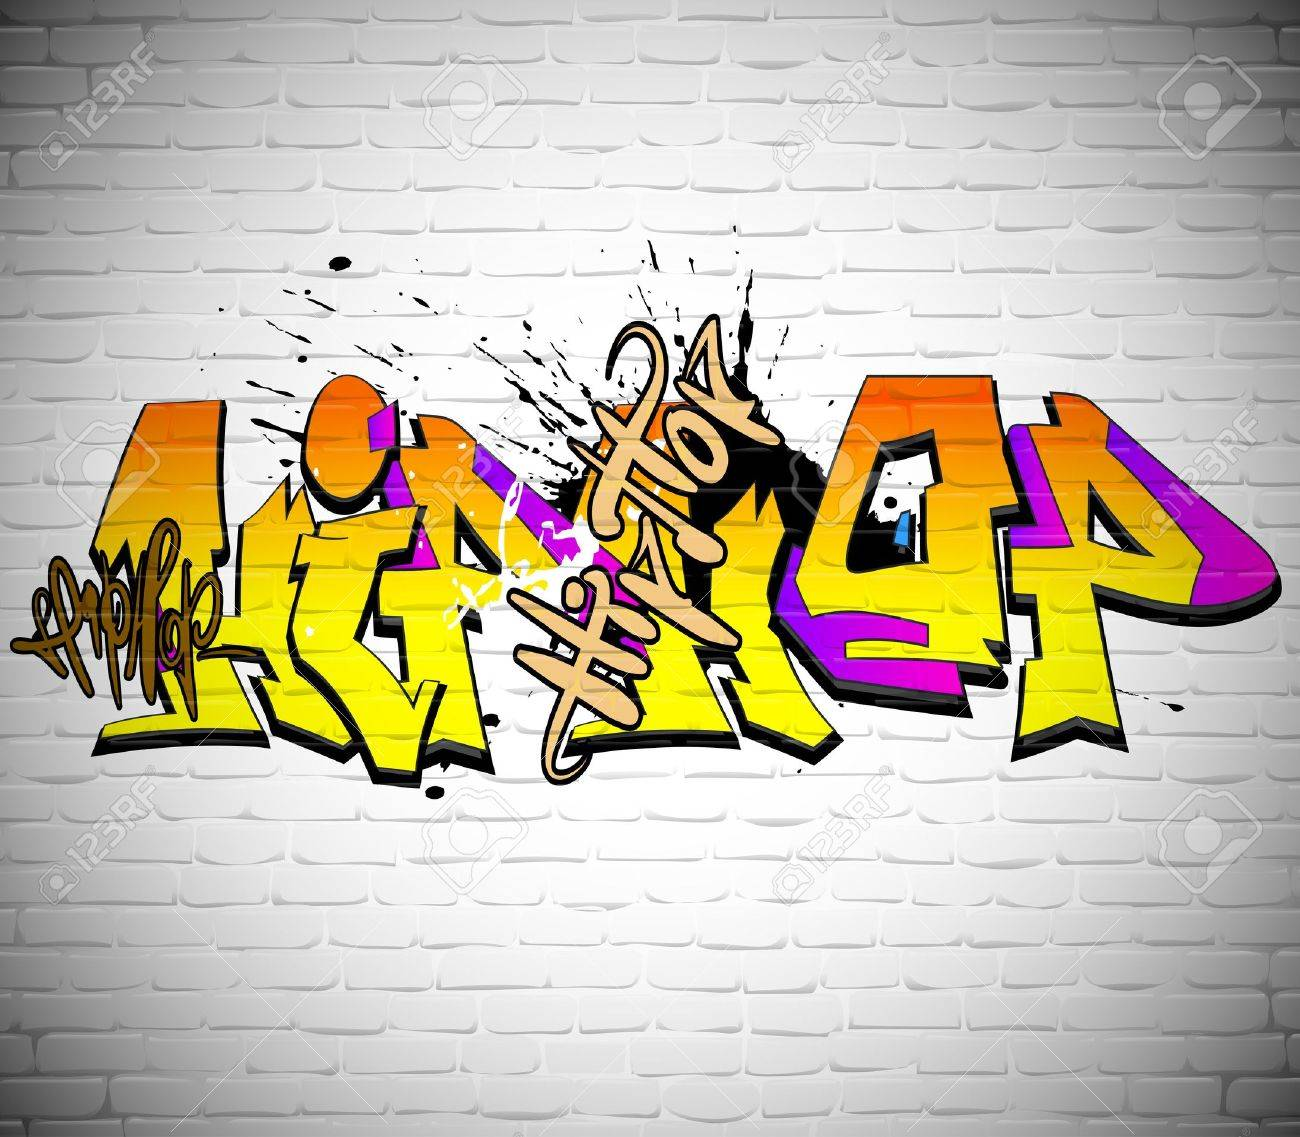 Graffiti Wall Background, Urban Art Royalty Free Cliparts, Vectors ...